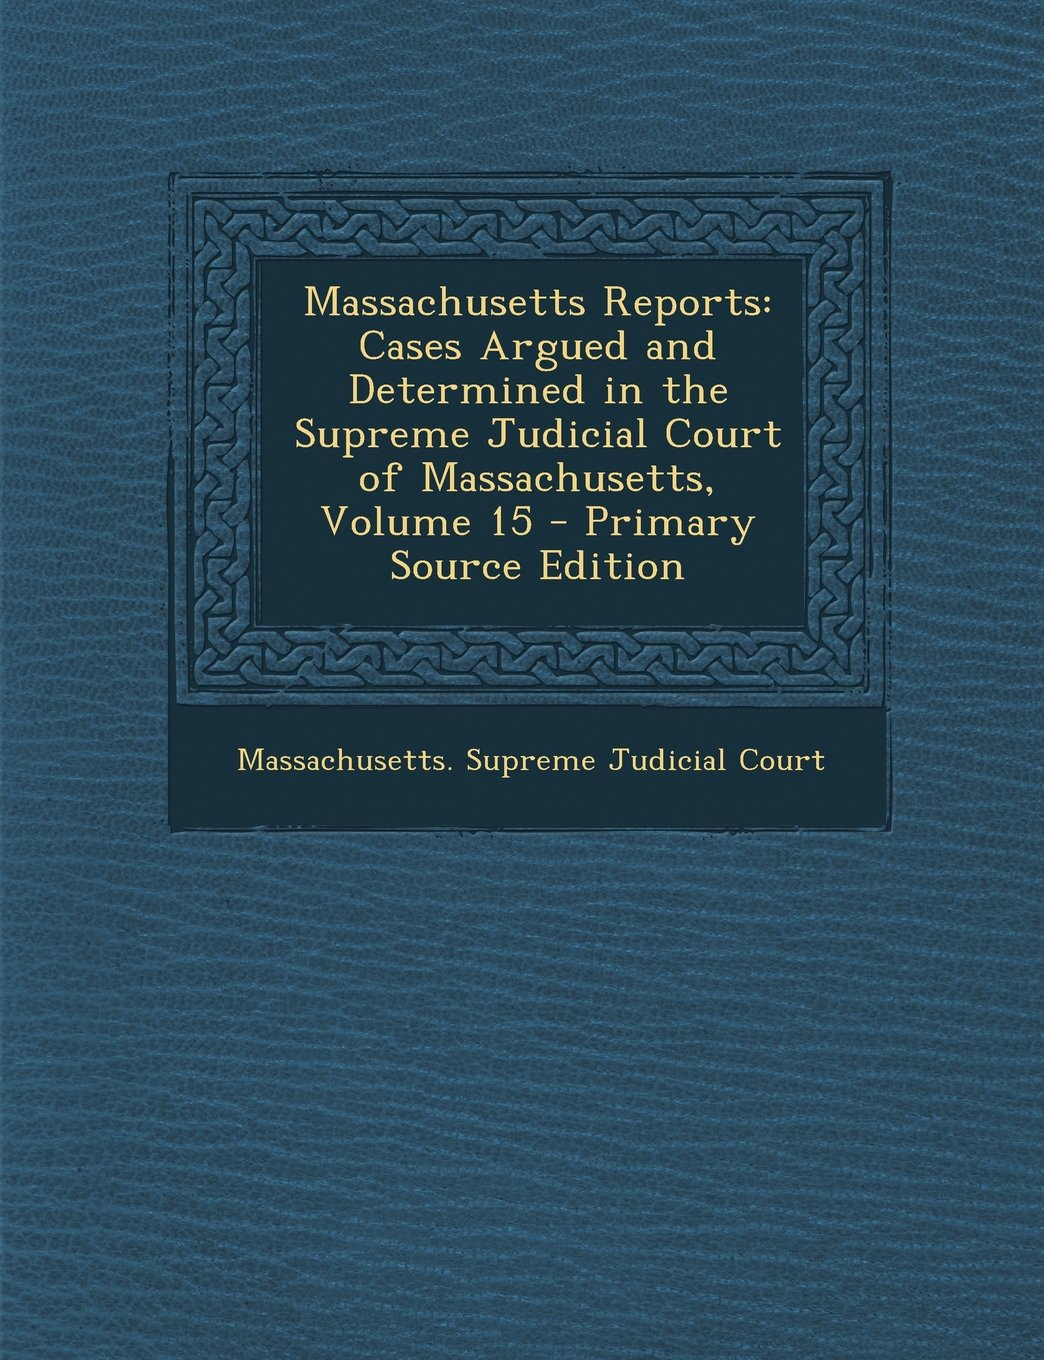 Read Online Massachusetts Reports: Cases Argued and Determined in the Supreme Judicial Court of Massachusetts, Volume 15 - Primary Source Edition ebook